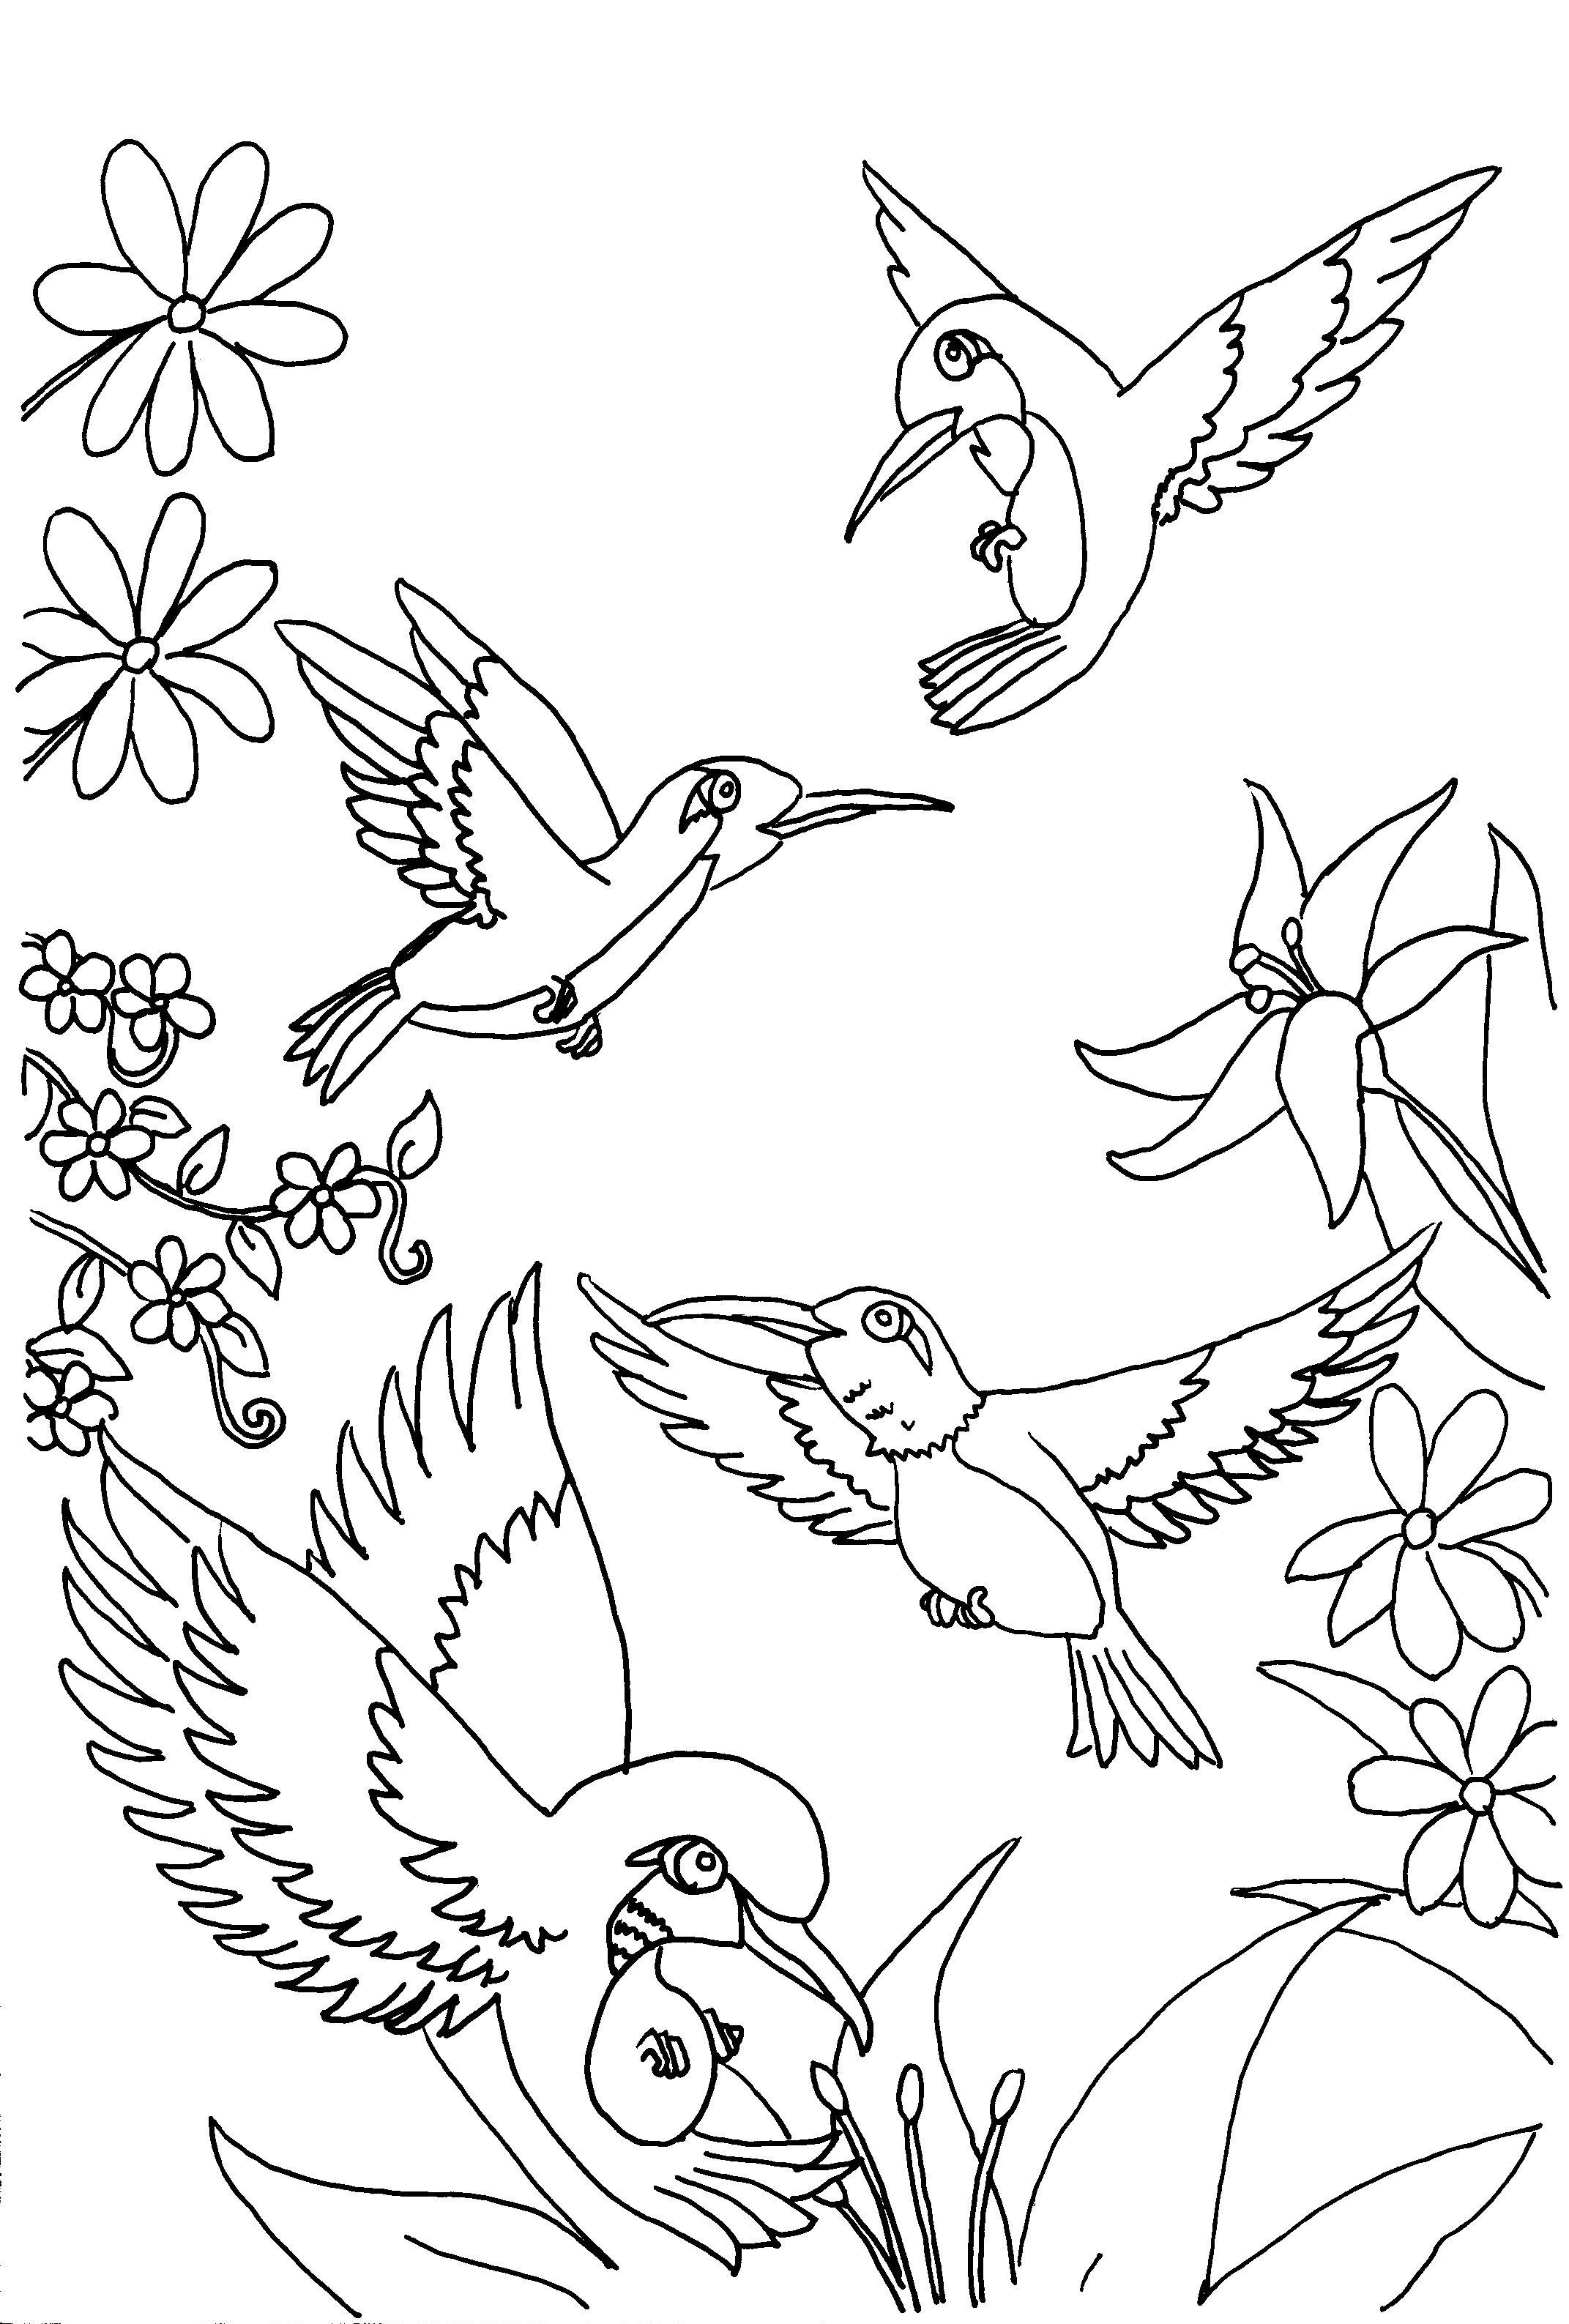 coloring bird for kids hummingbird coloring pages to download and print for free kids for bird coloring